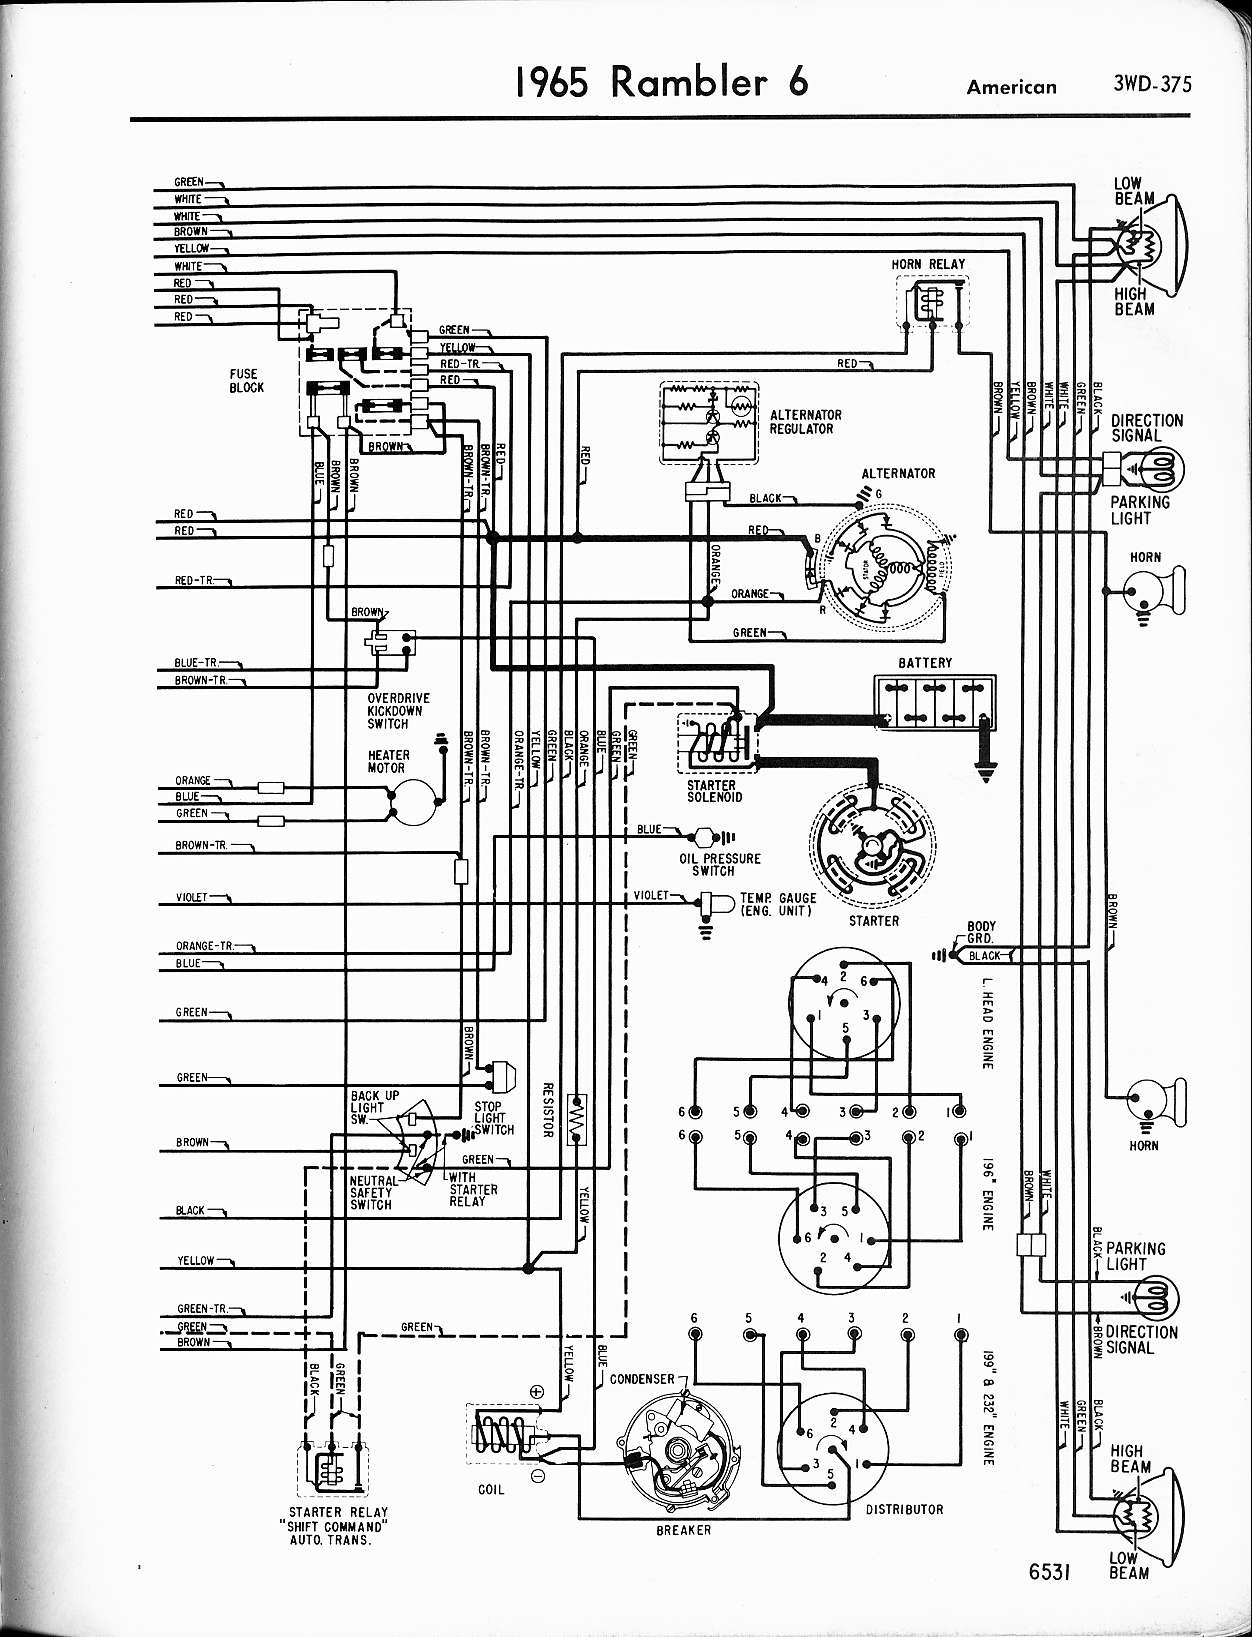 Rambler Wiring Diagrams The Old Car Manual Project 1960 Rambler 64 Rambler  Wiring Diagram